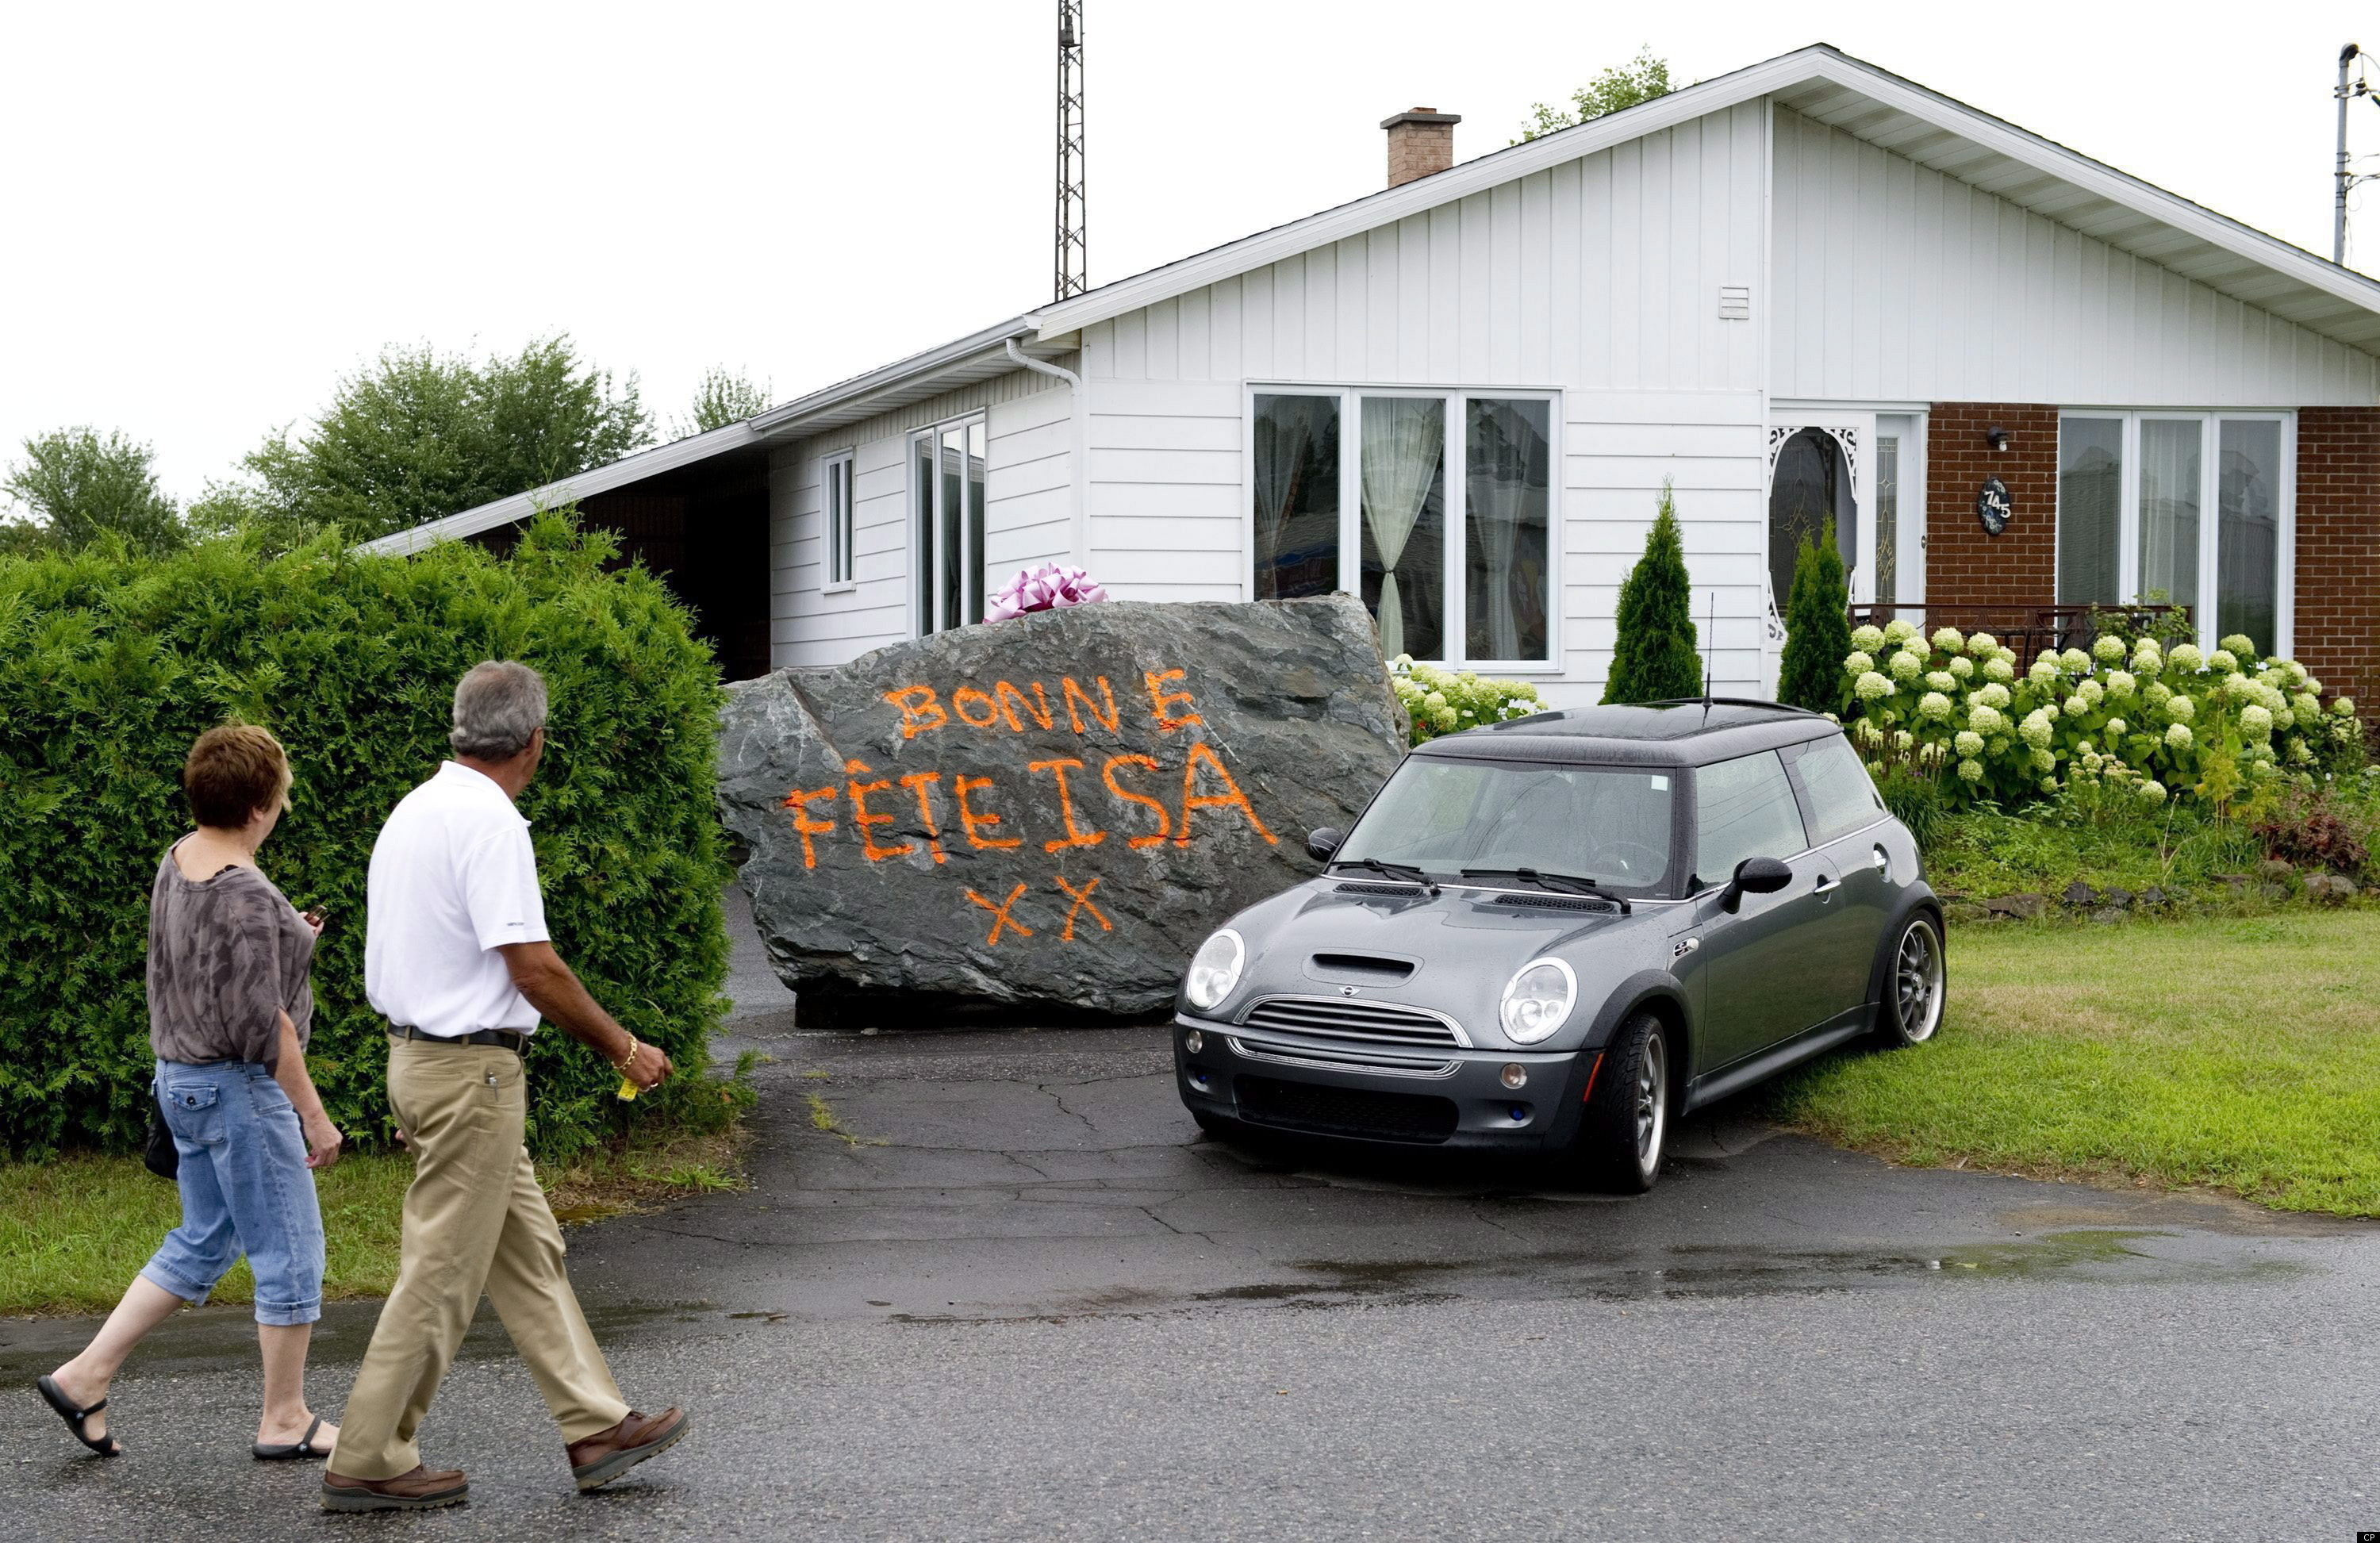 Dany Lariviere Quebec Mayor Gives ExWife A 20Ton Boulder As